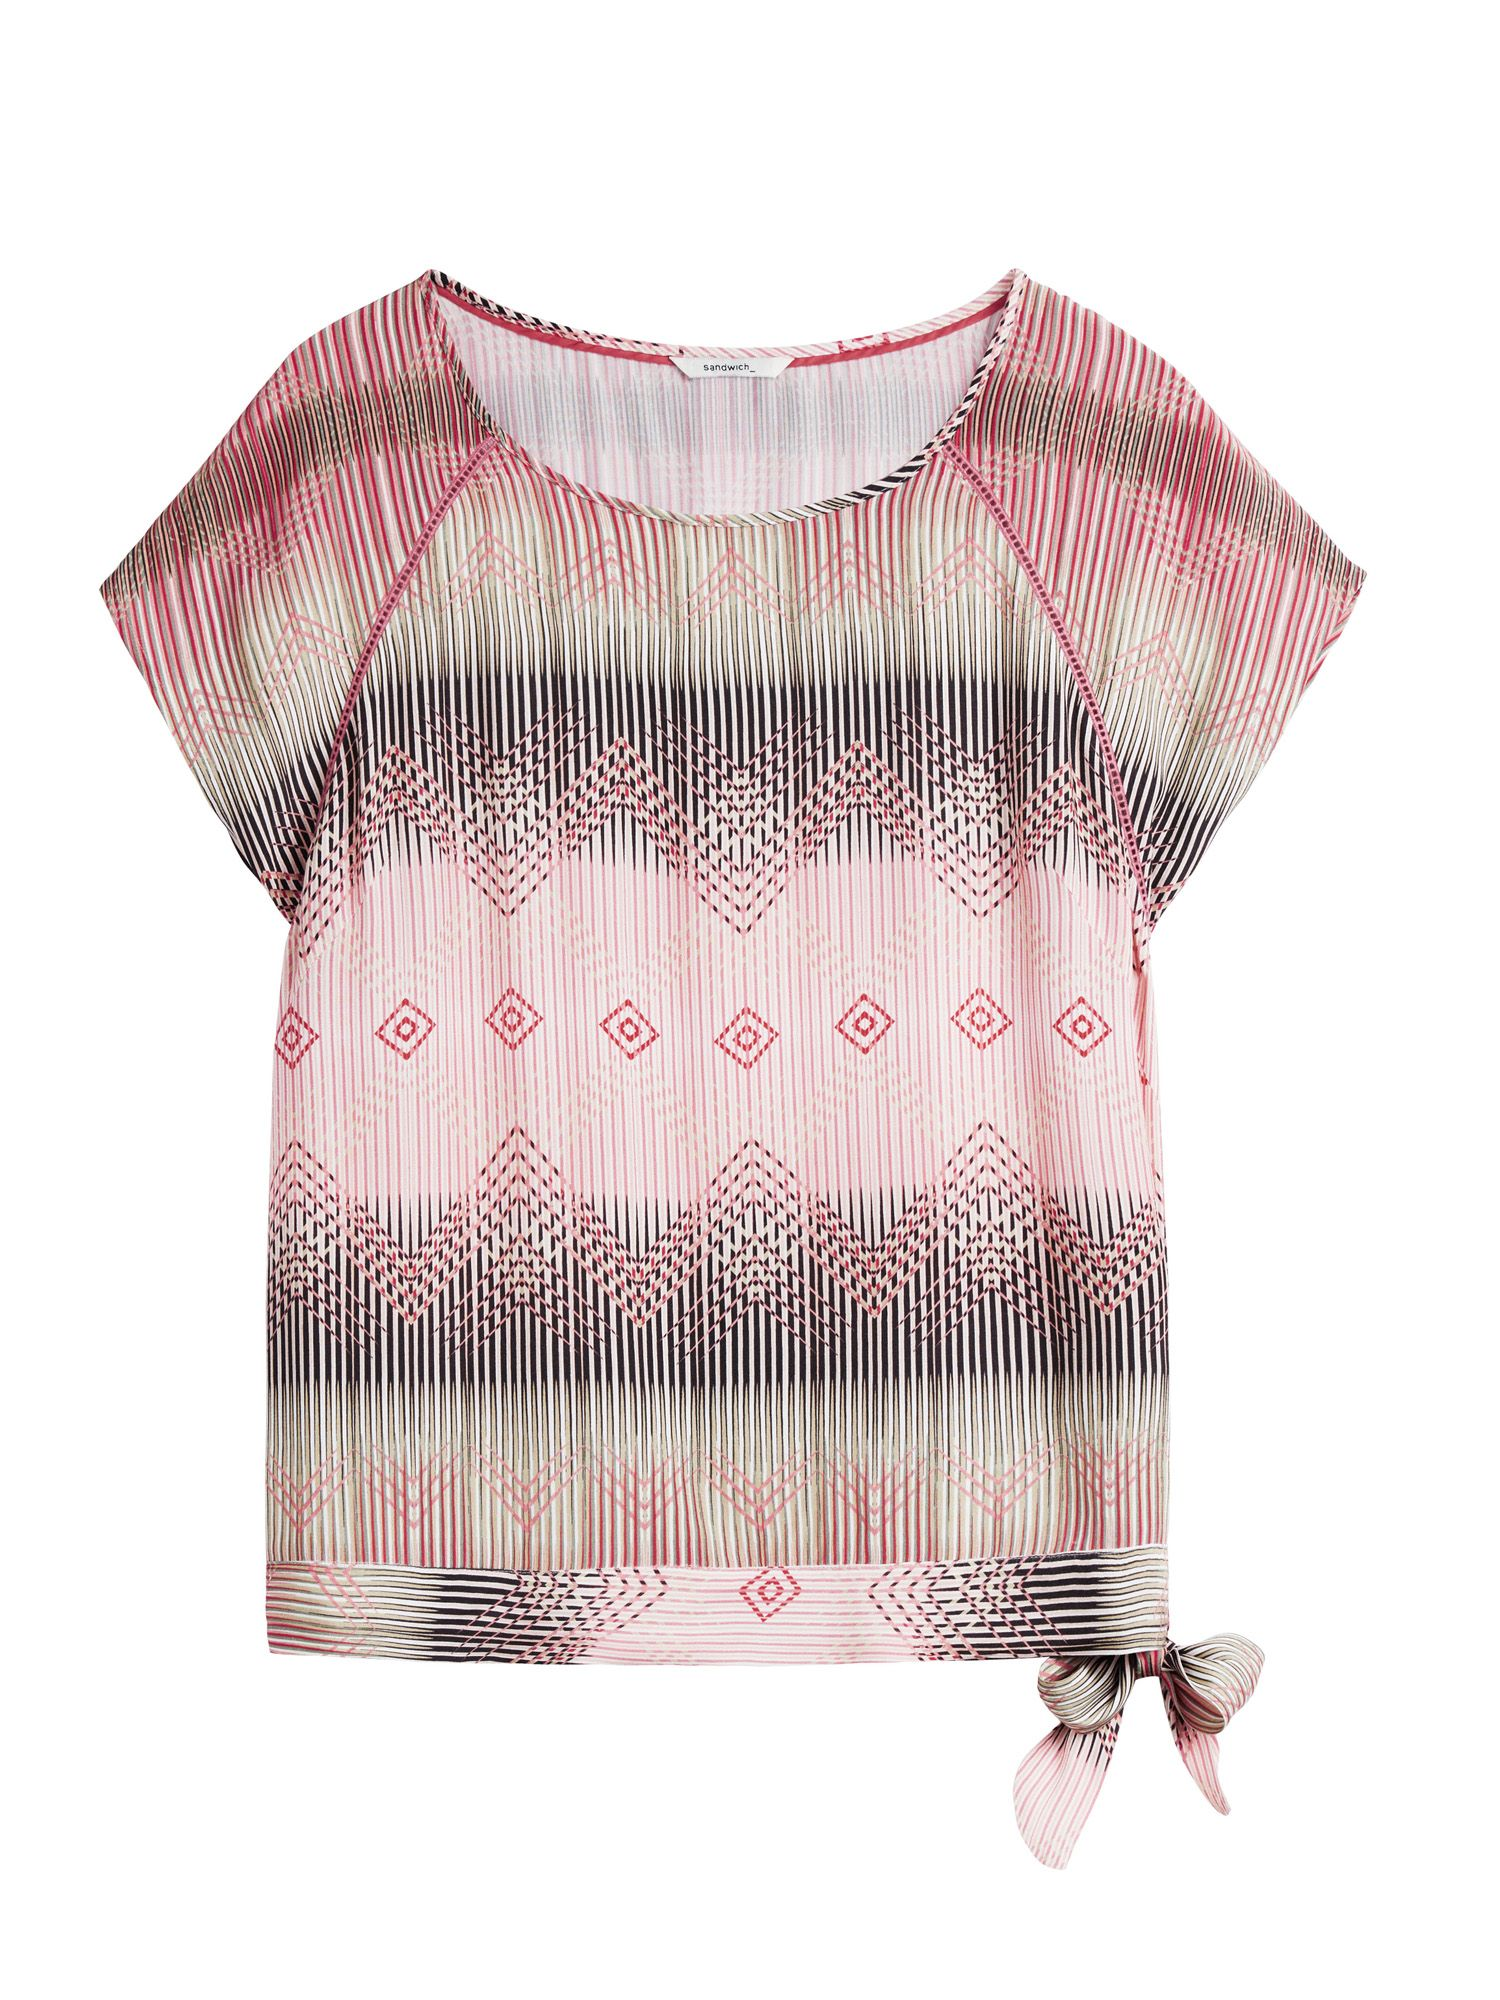 Sandwich Boho Print Top With Side Knot Detail, Pink